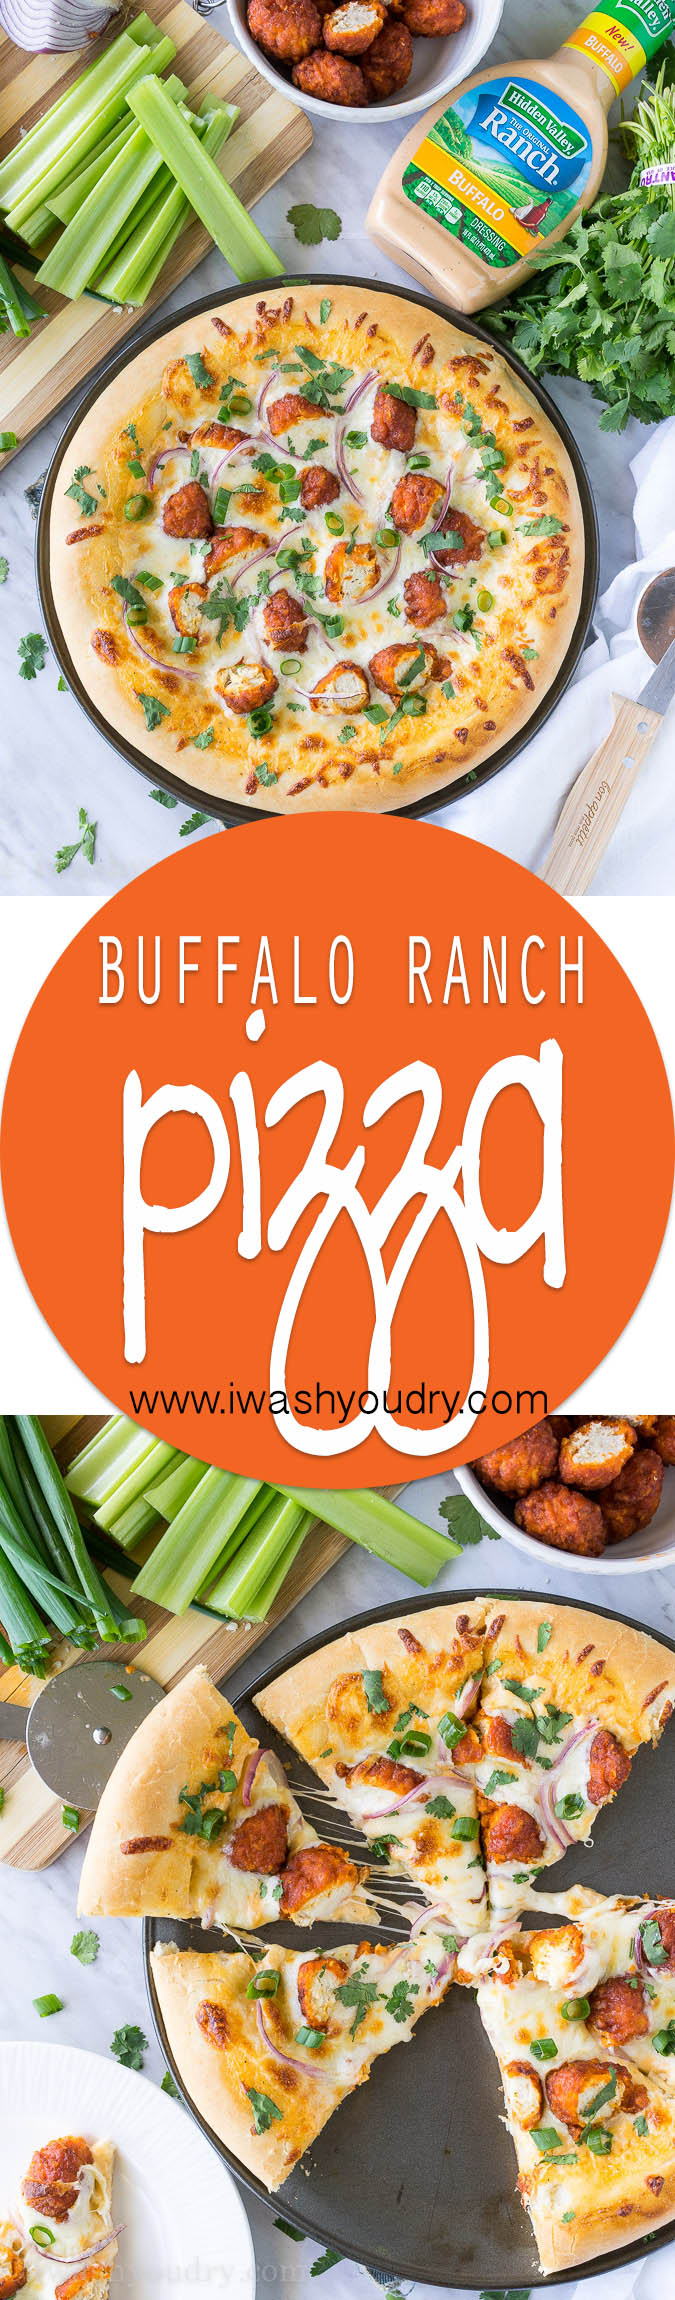 The combination of Buffalo Wings and Pizza in a creamy and cheesy Buffalo Ranch Chicken Pizza! So good with Hidden Valley's new Buffalo Ranch dressing!